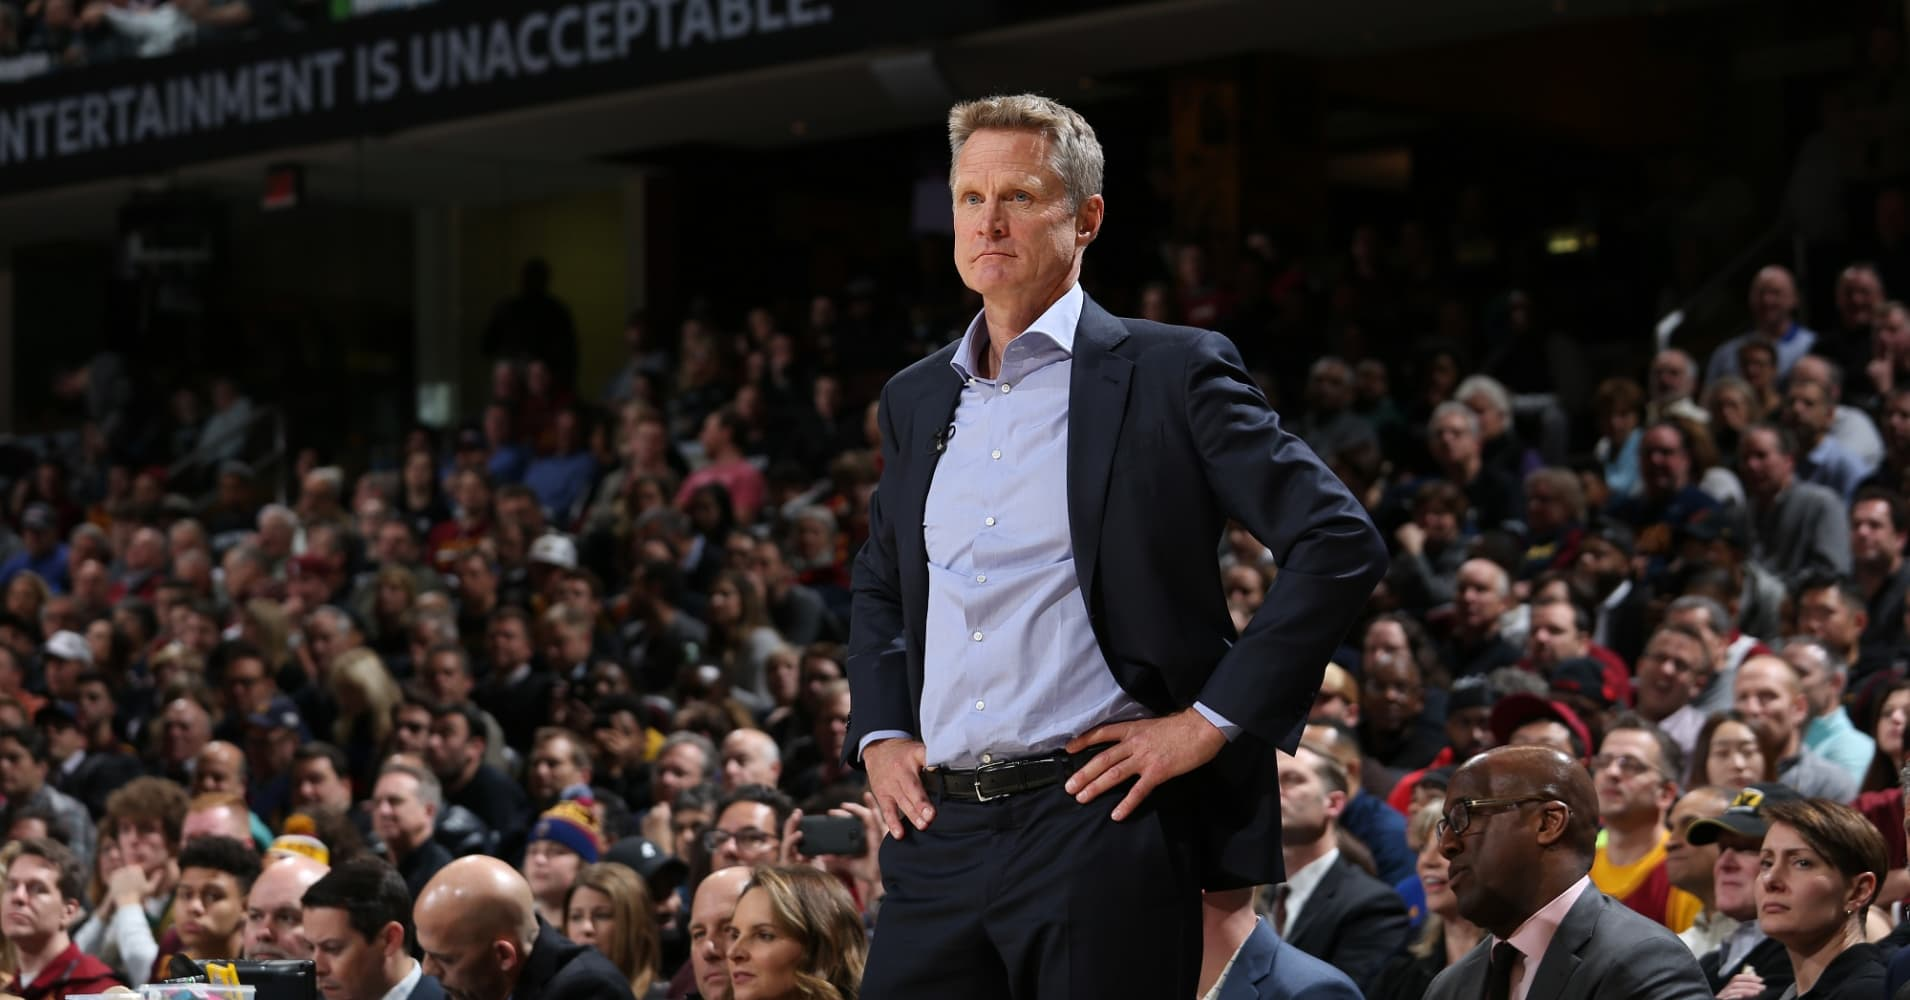 Head Coach Steve Kerr of the Golden State Warriors looks on during the game against the Cleveland Cavaliers on January 15, 2018 at Quicken Loans Arena in Cleveland, Ohio.